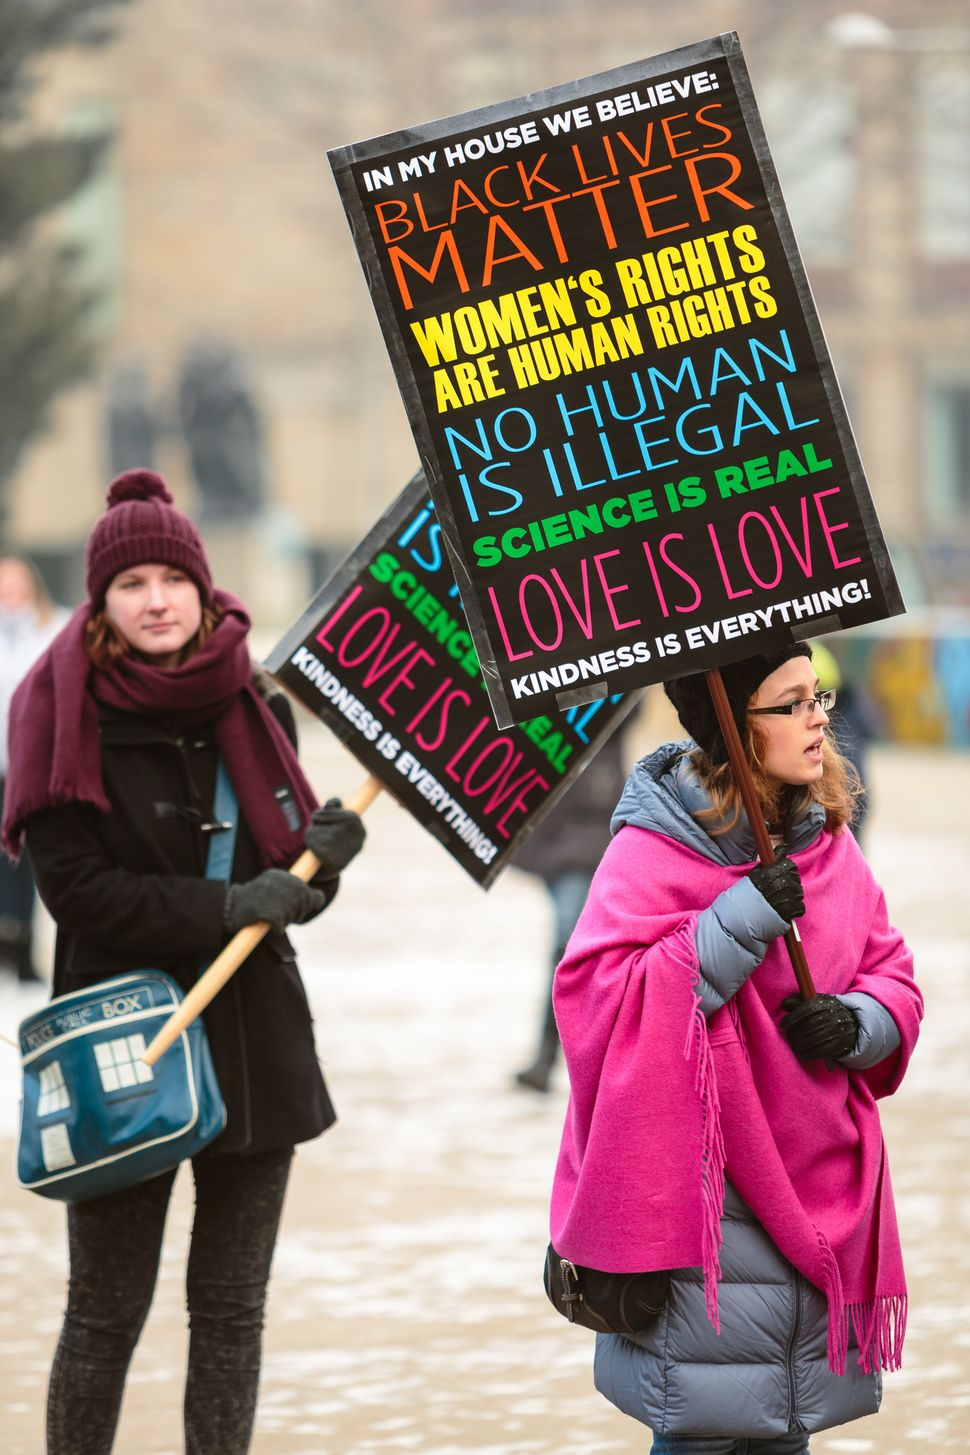 Women attend a protest for women's rights and freedom in solidarity with the Women's March on Washington on January 21, 2017